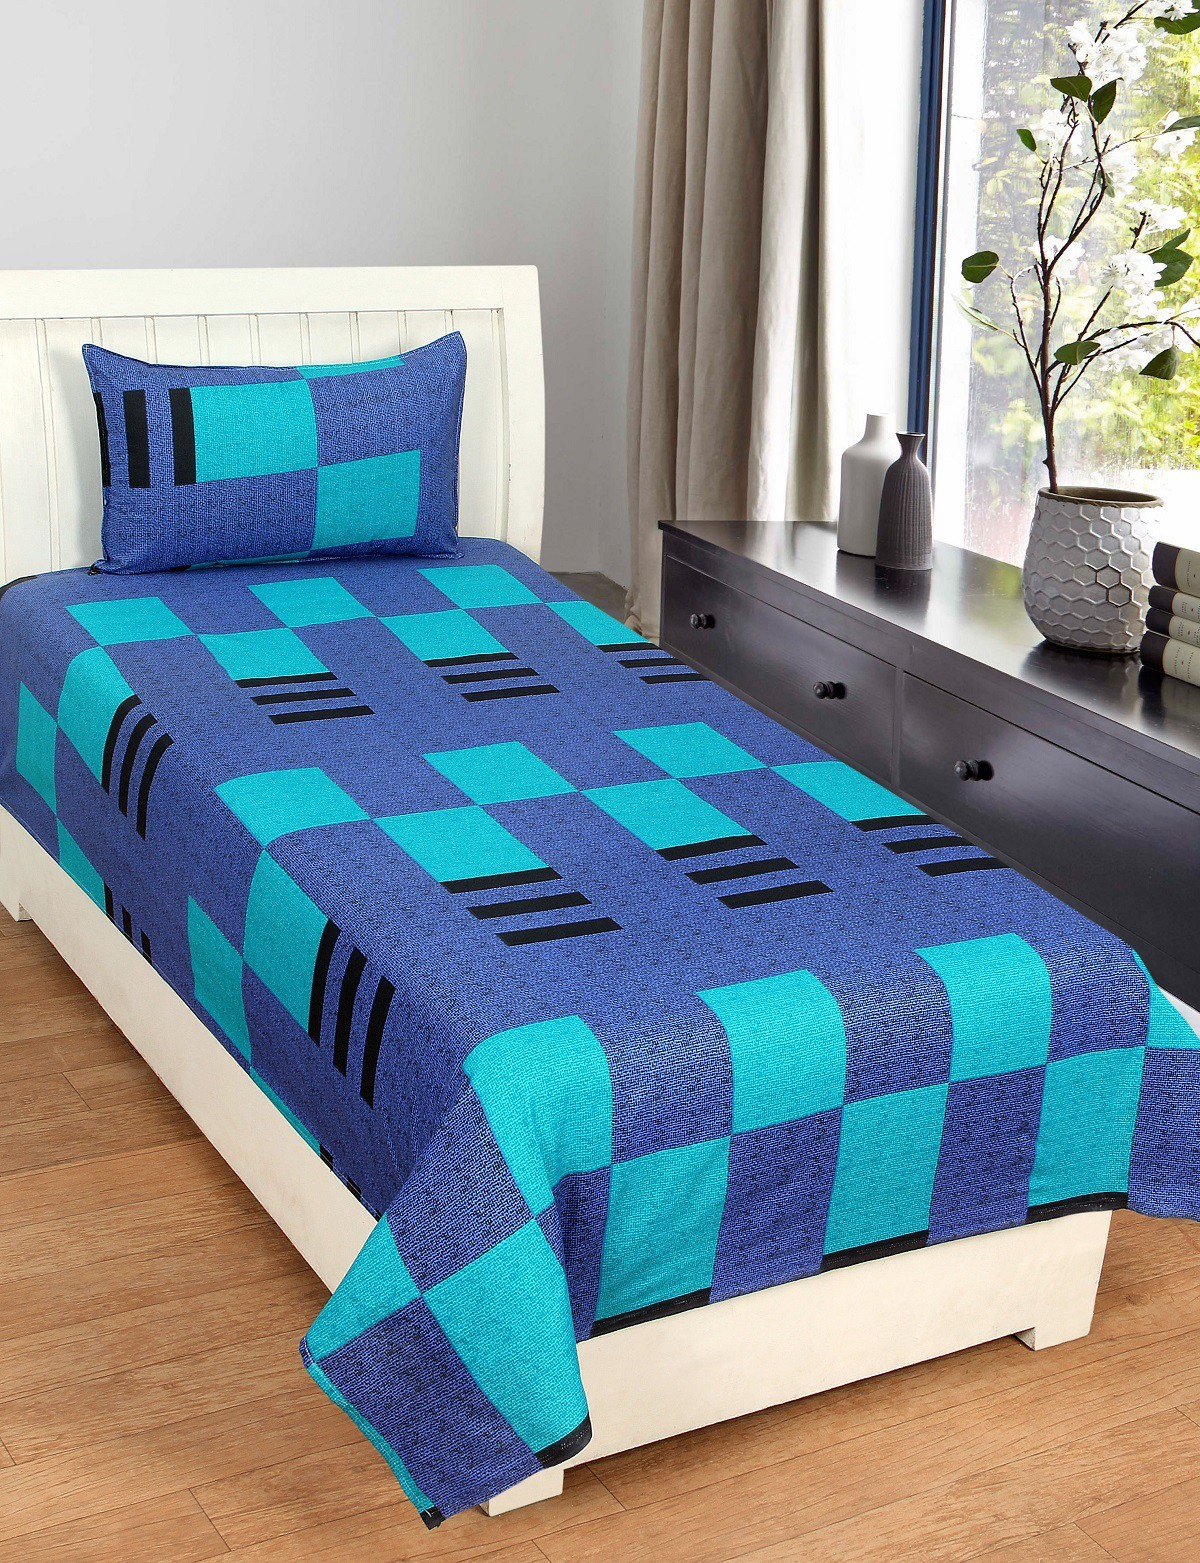 Flipkart - Bedsheets, Curtains & more Furnishing Range